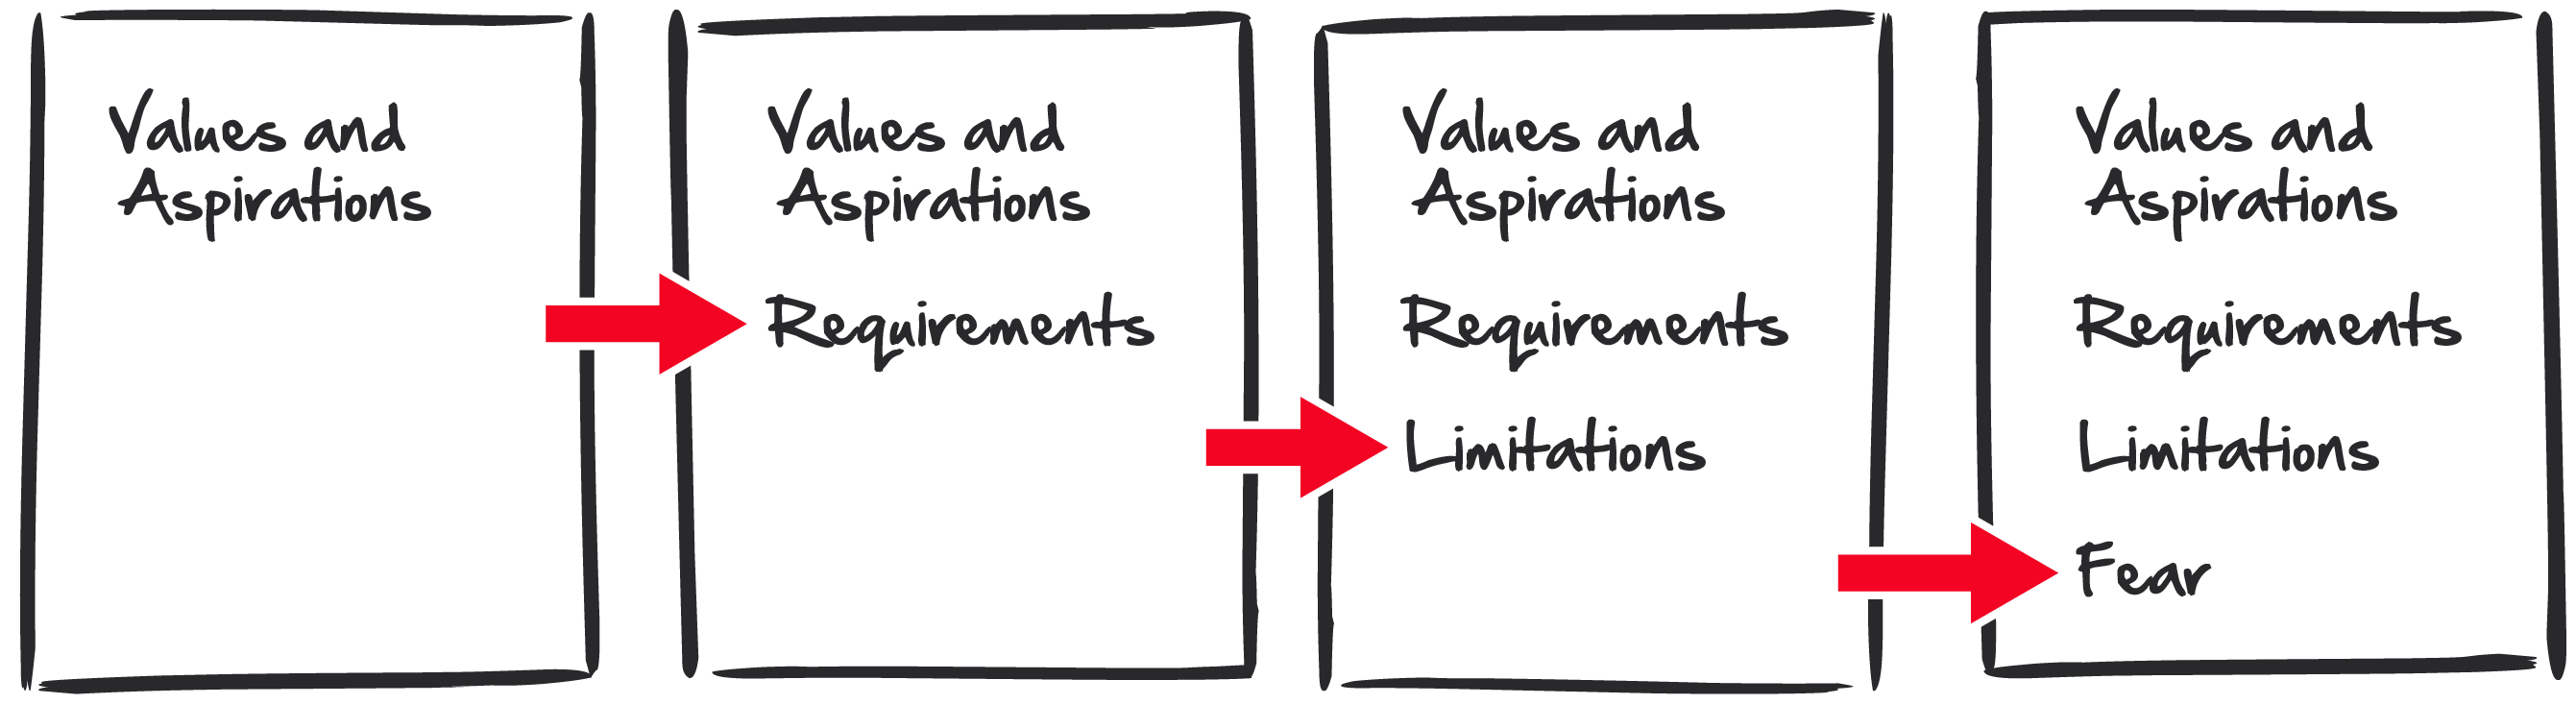 "Four pieces of paper showing how the process works. The first piece of paper has the text ""Values and Aspirations"" written on it. An arrow points to the second piece of paper, reads ""Values and Aspirations"" with ""Requirements"" below it. A second arrow points to the third page, which lists ""Values and Aspirations"", then ""Requirements,"" then ""Limitations."" A third arrow points to the fourth and final piece of paper, which lists the previous three subcategories, plus the word ""Fear""."